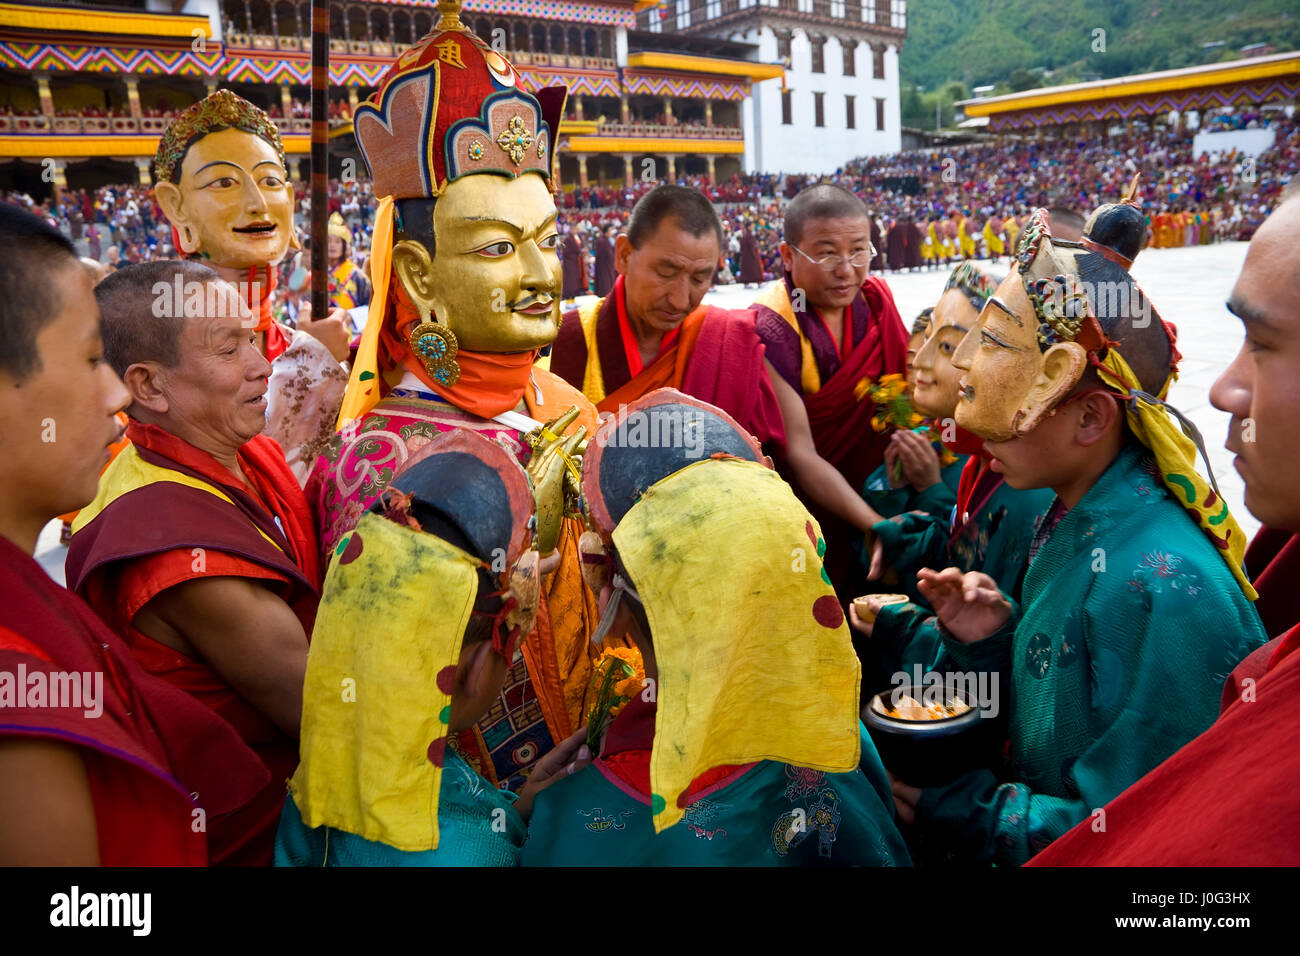 Masked figure being carried past crowd, Festival, Trashichhoe Dzong,  monastery, Thimpu, Bhutan - Stock Image